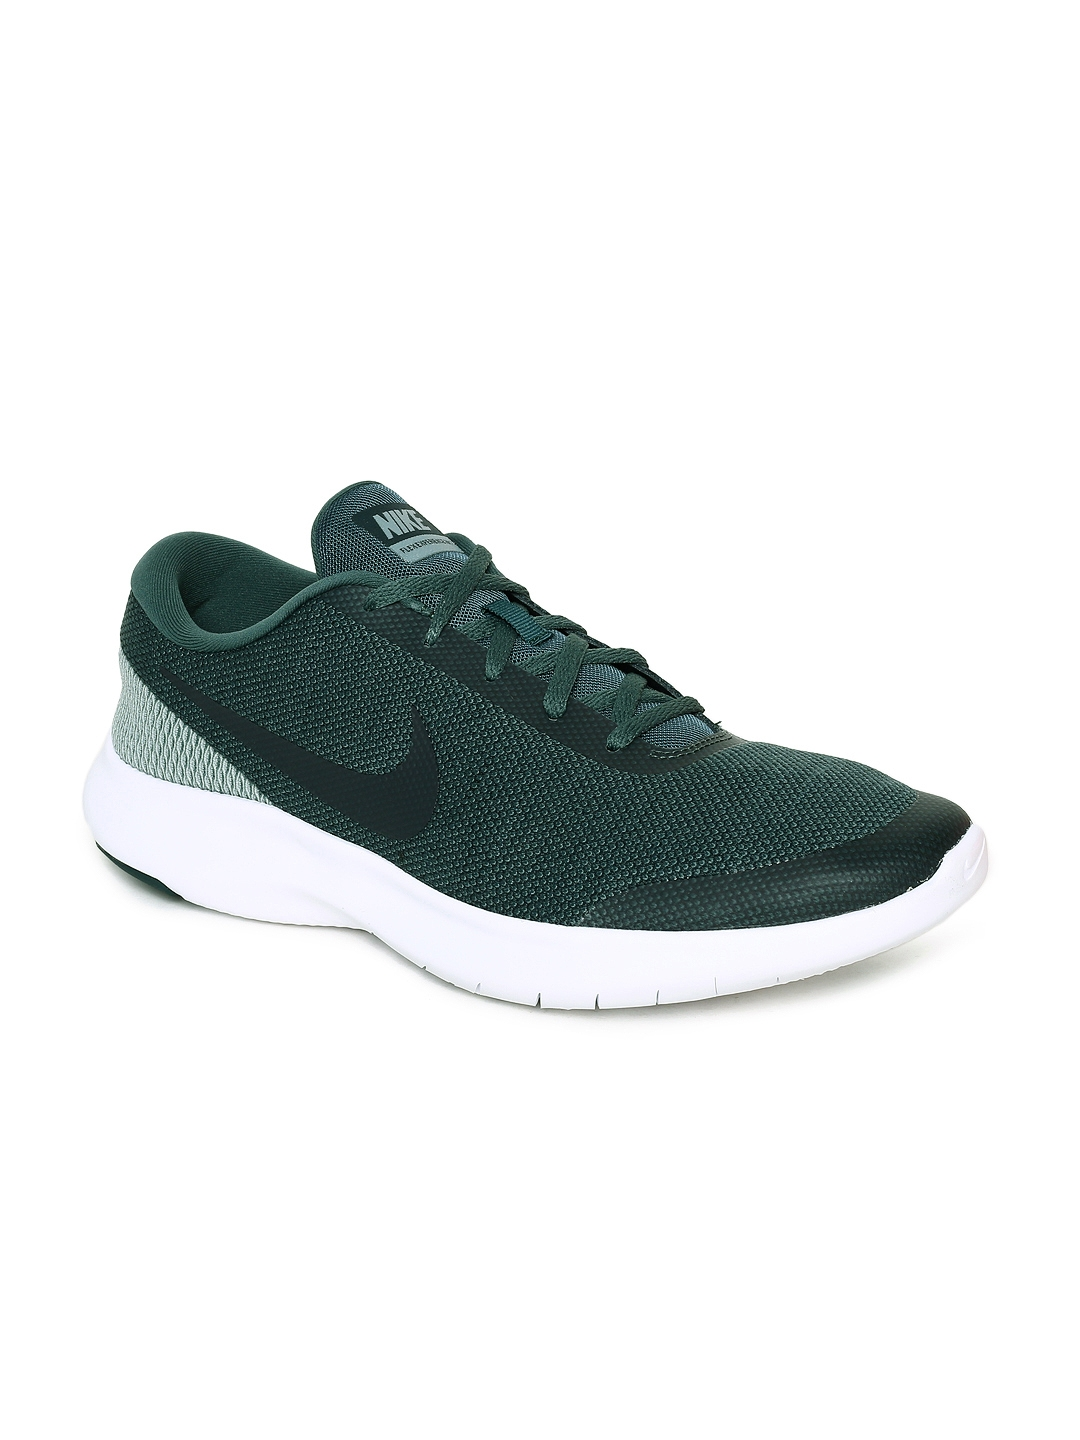 1e360e986b Buy Nike Men FLEX EXPERIENCE RN 7 Green Running Shoes - Sports Shoes ...